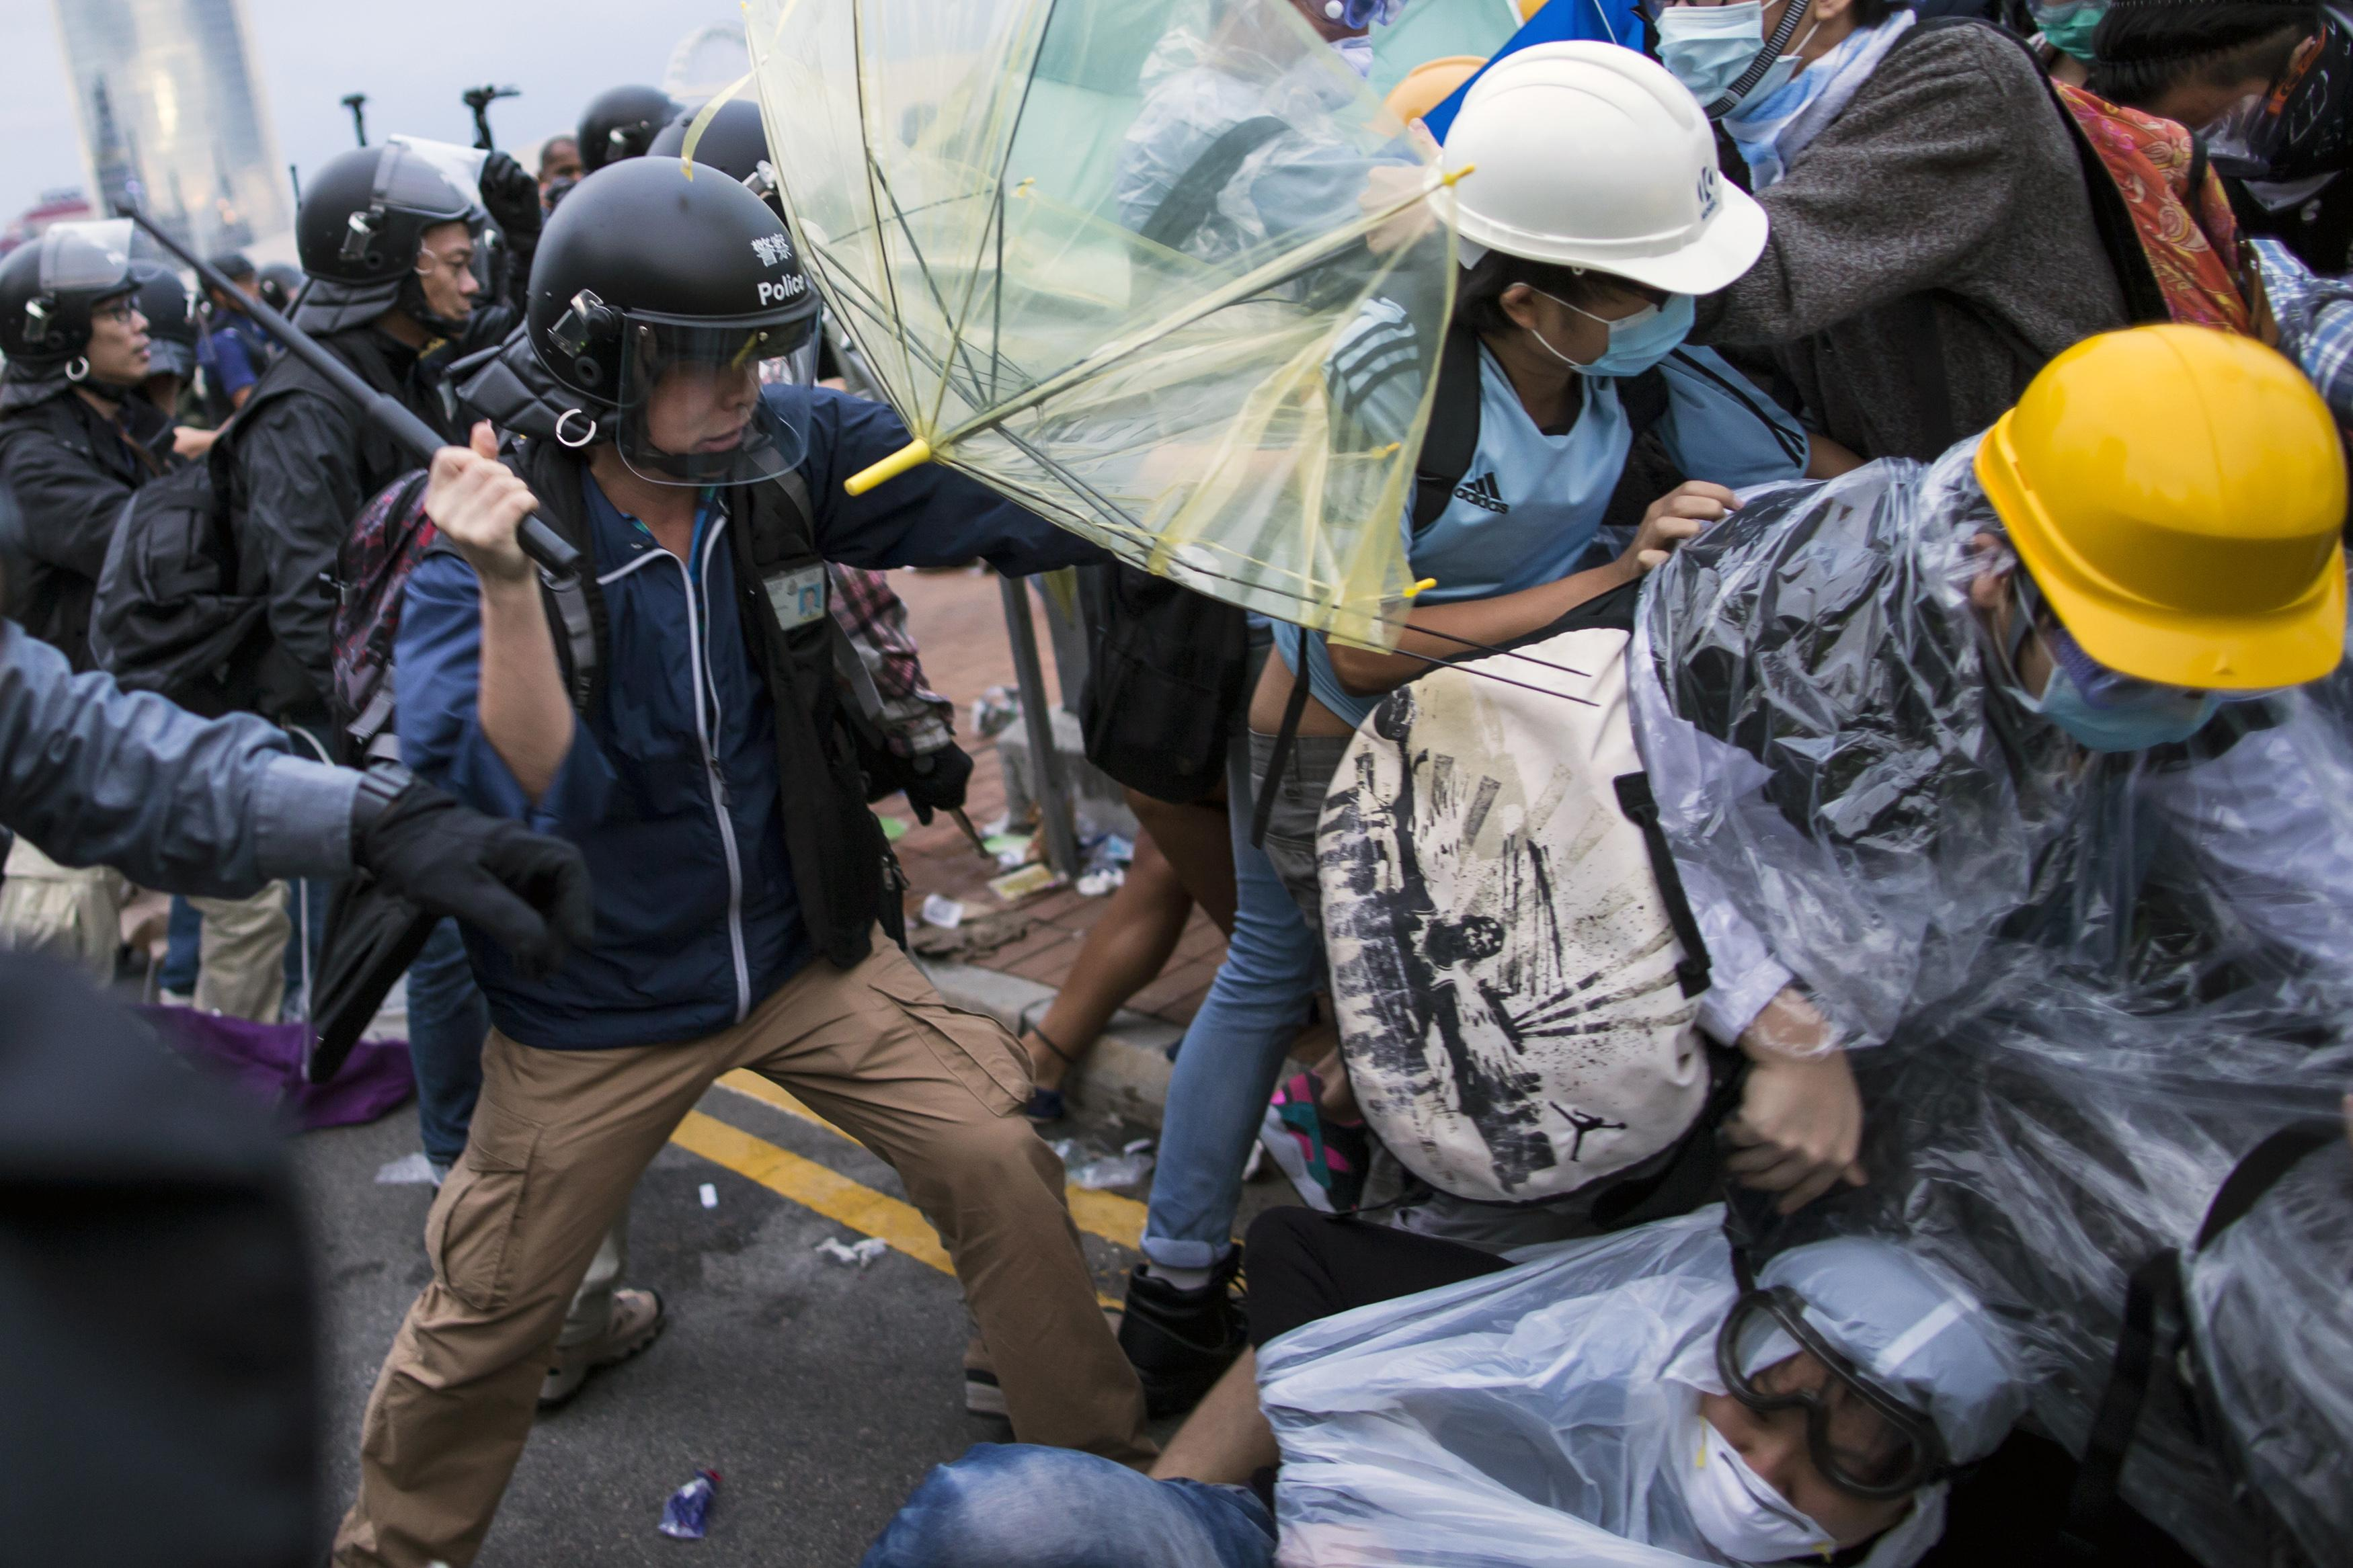 Occupy Central Update: Hong Kong Student Leaders On Hunger Strike, Government Vows 'Resolute Action' To Clear Protesters